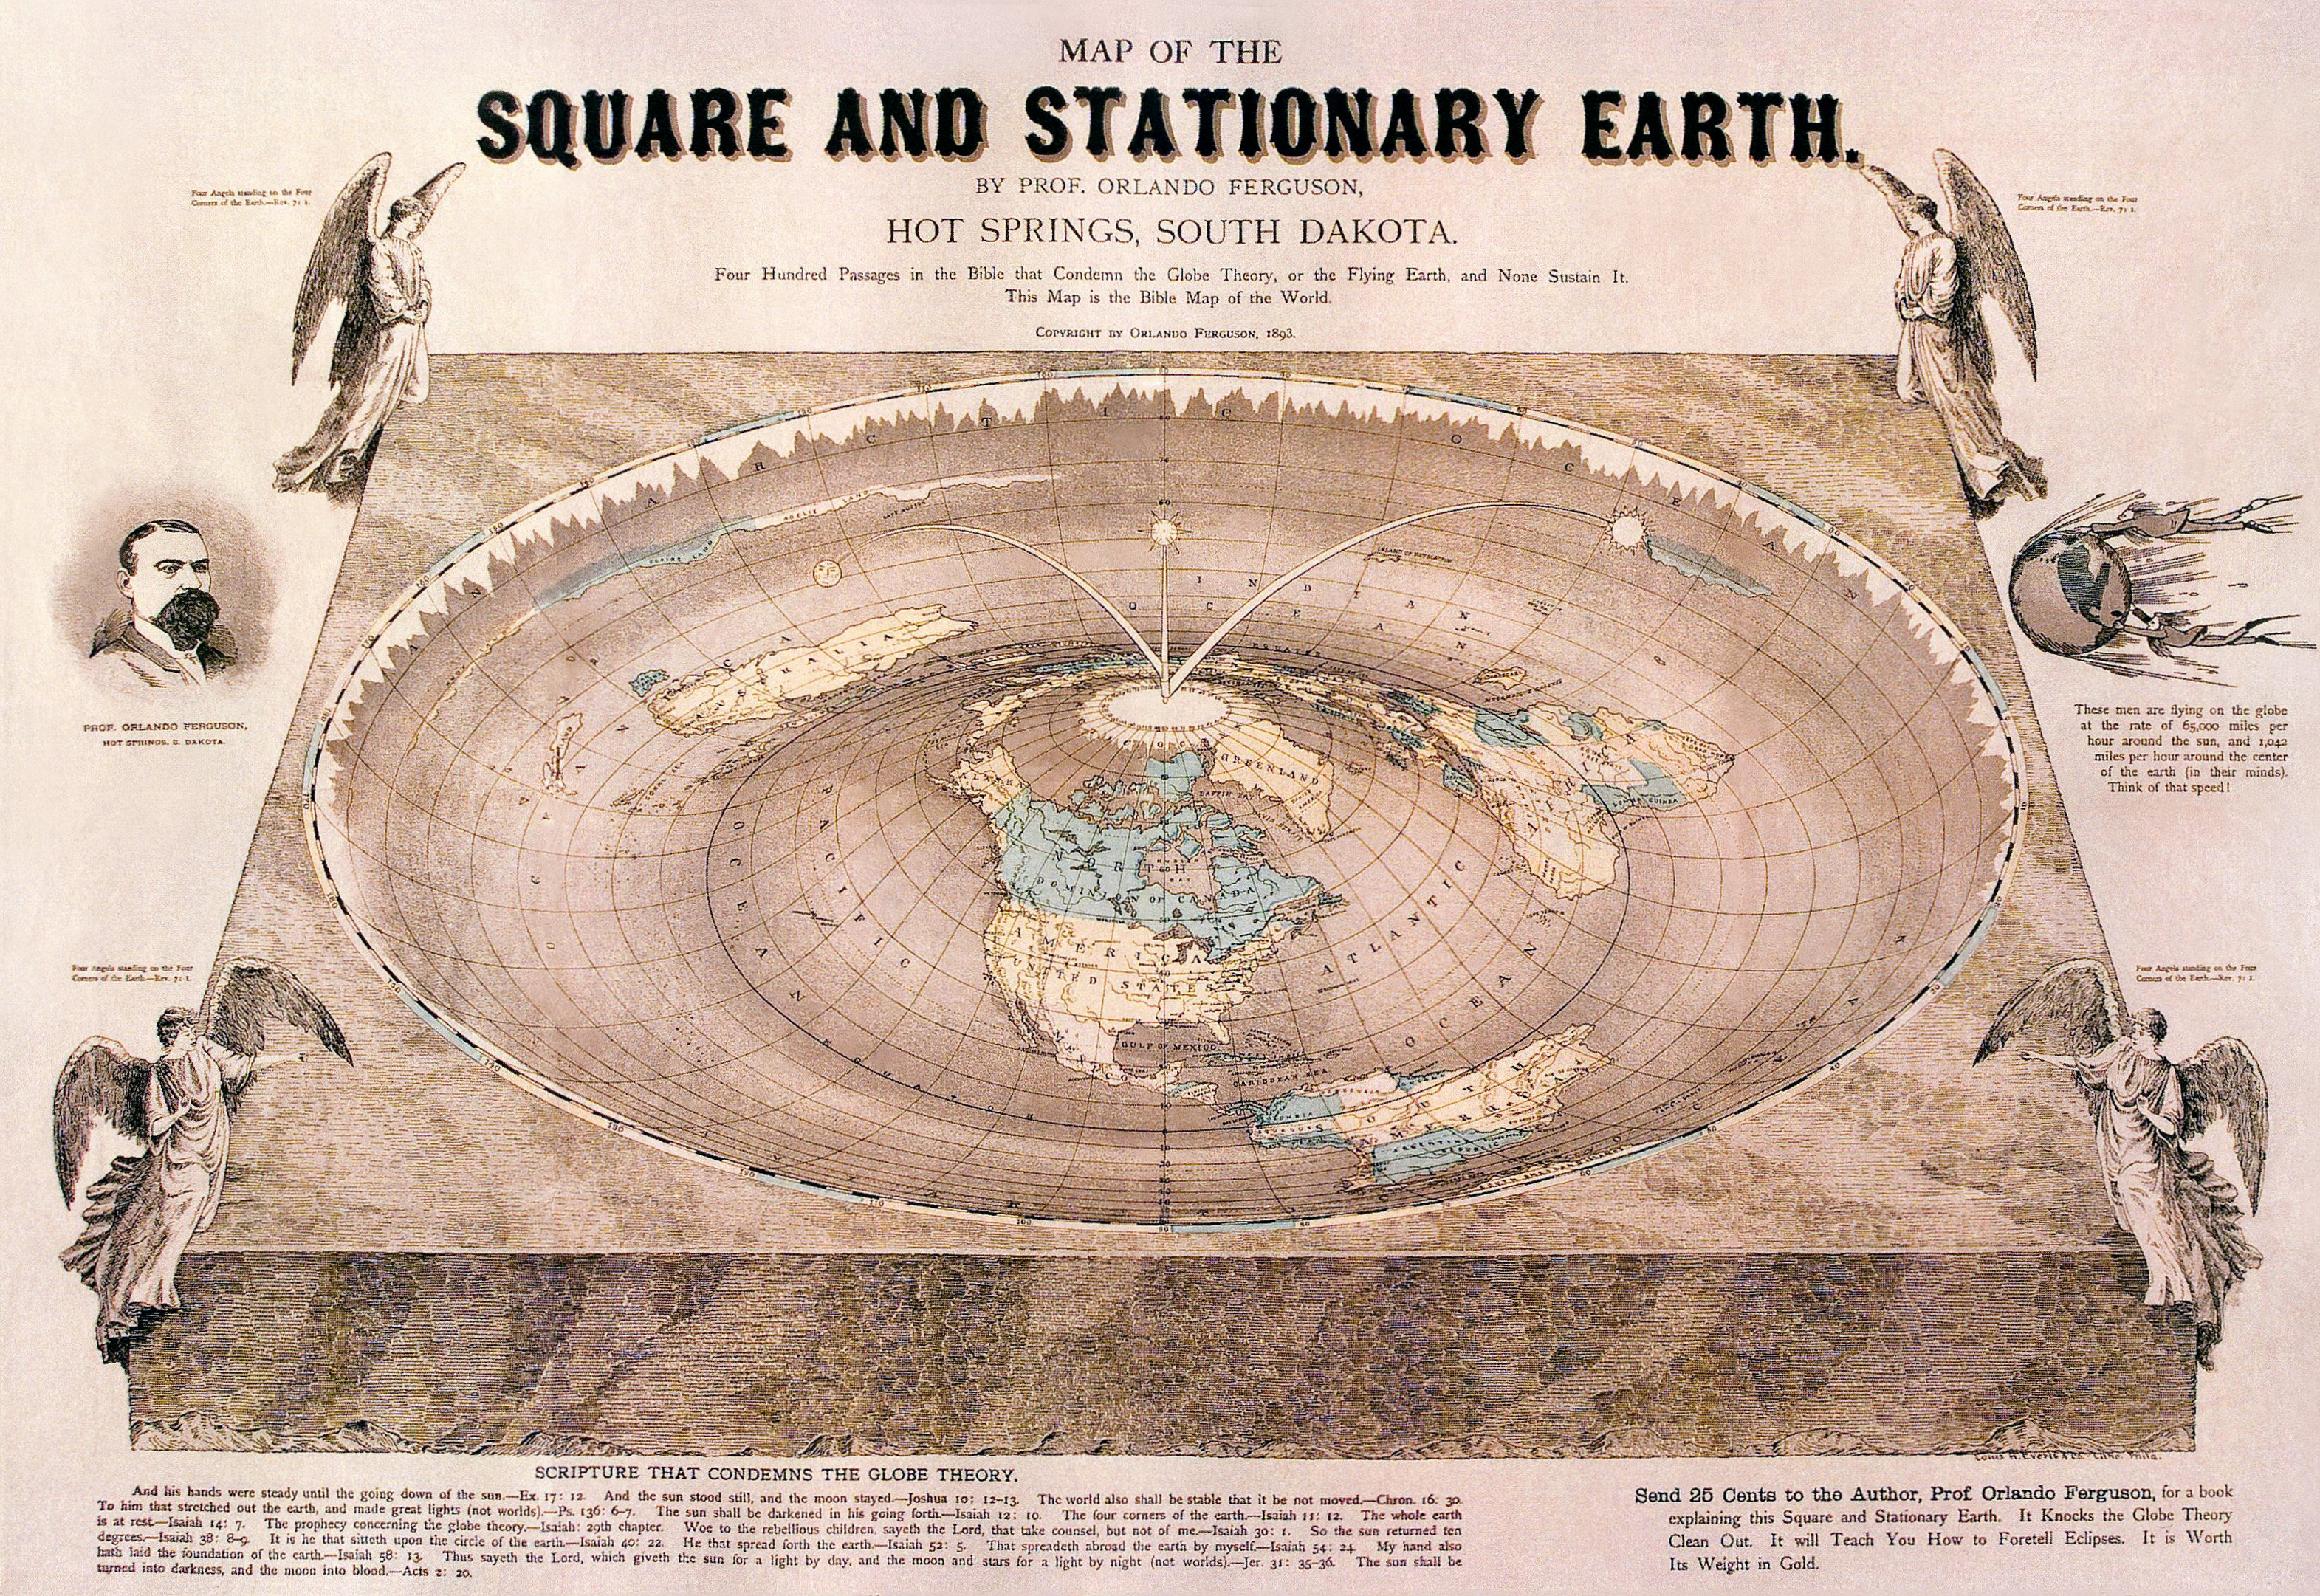 https://upload.wikimedia.org/wikipedia/commons/1/13/Orlando-Ferguson-flat-earth-map_edit.jpg